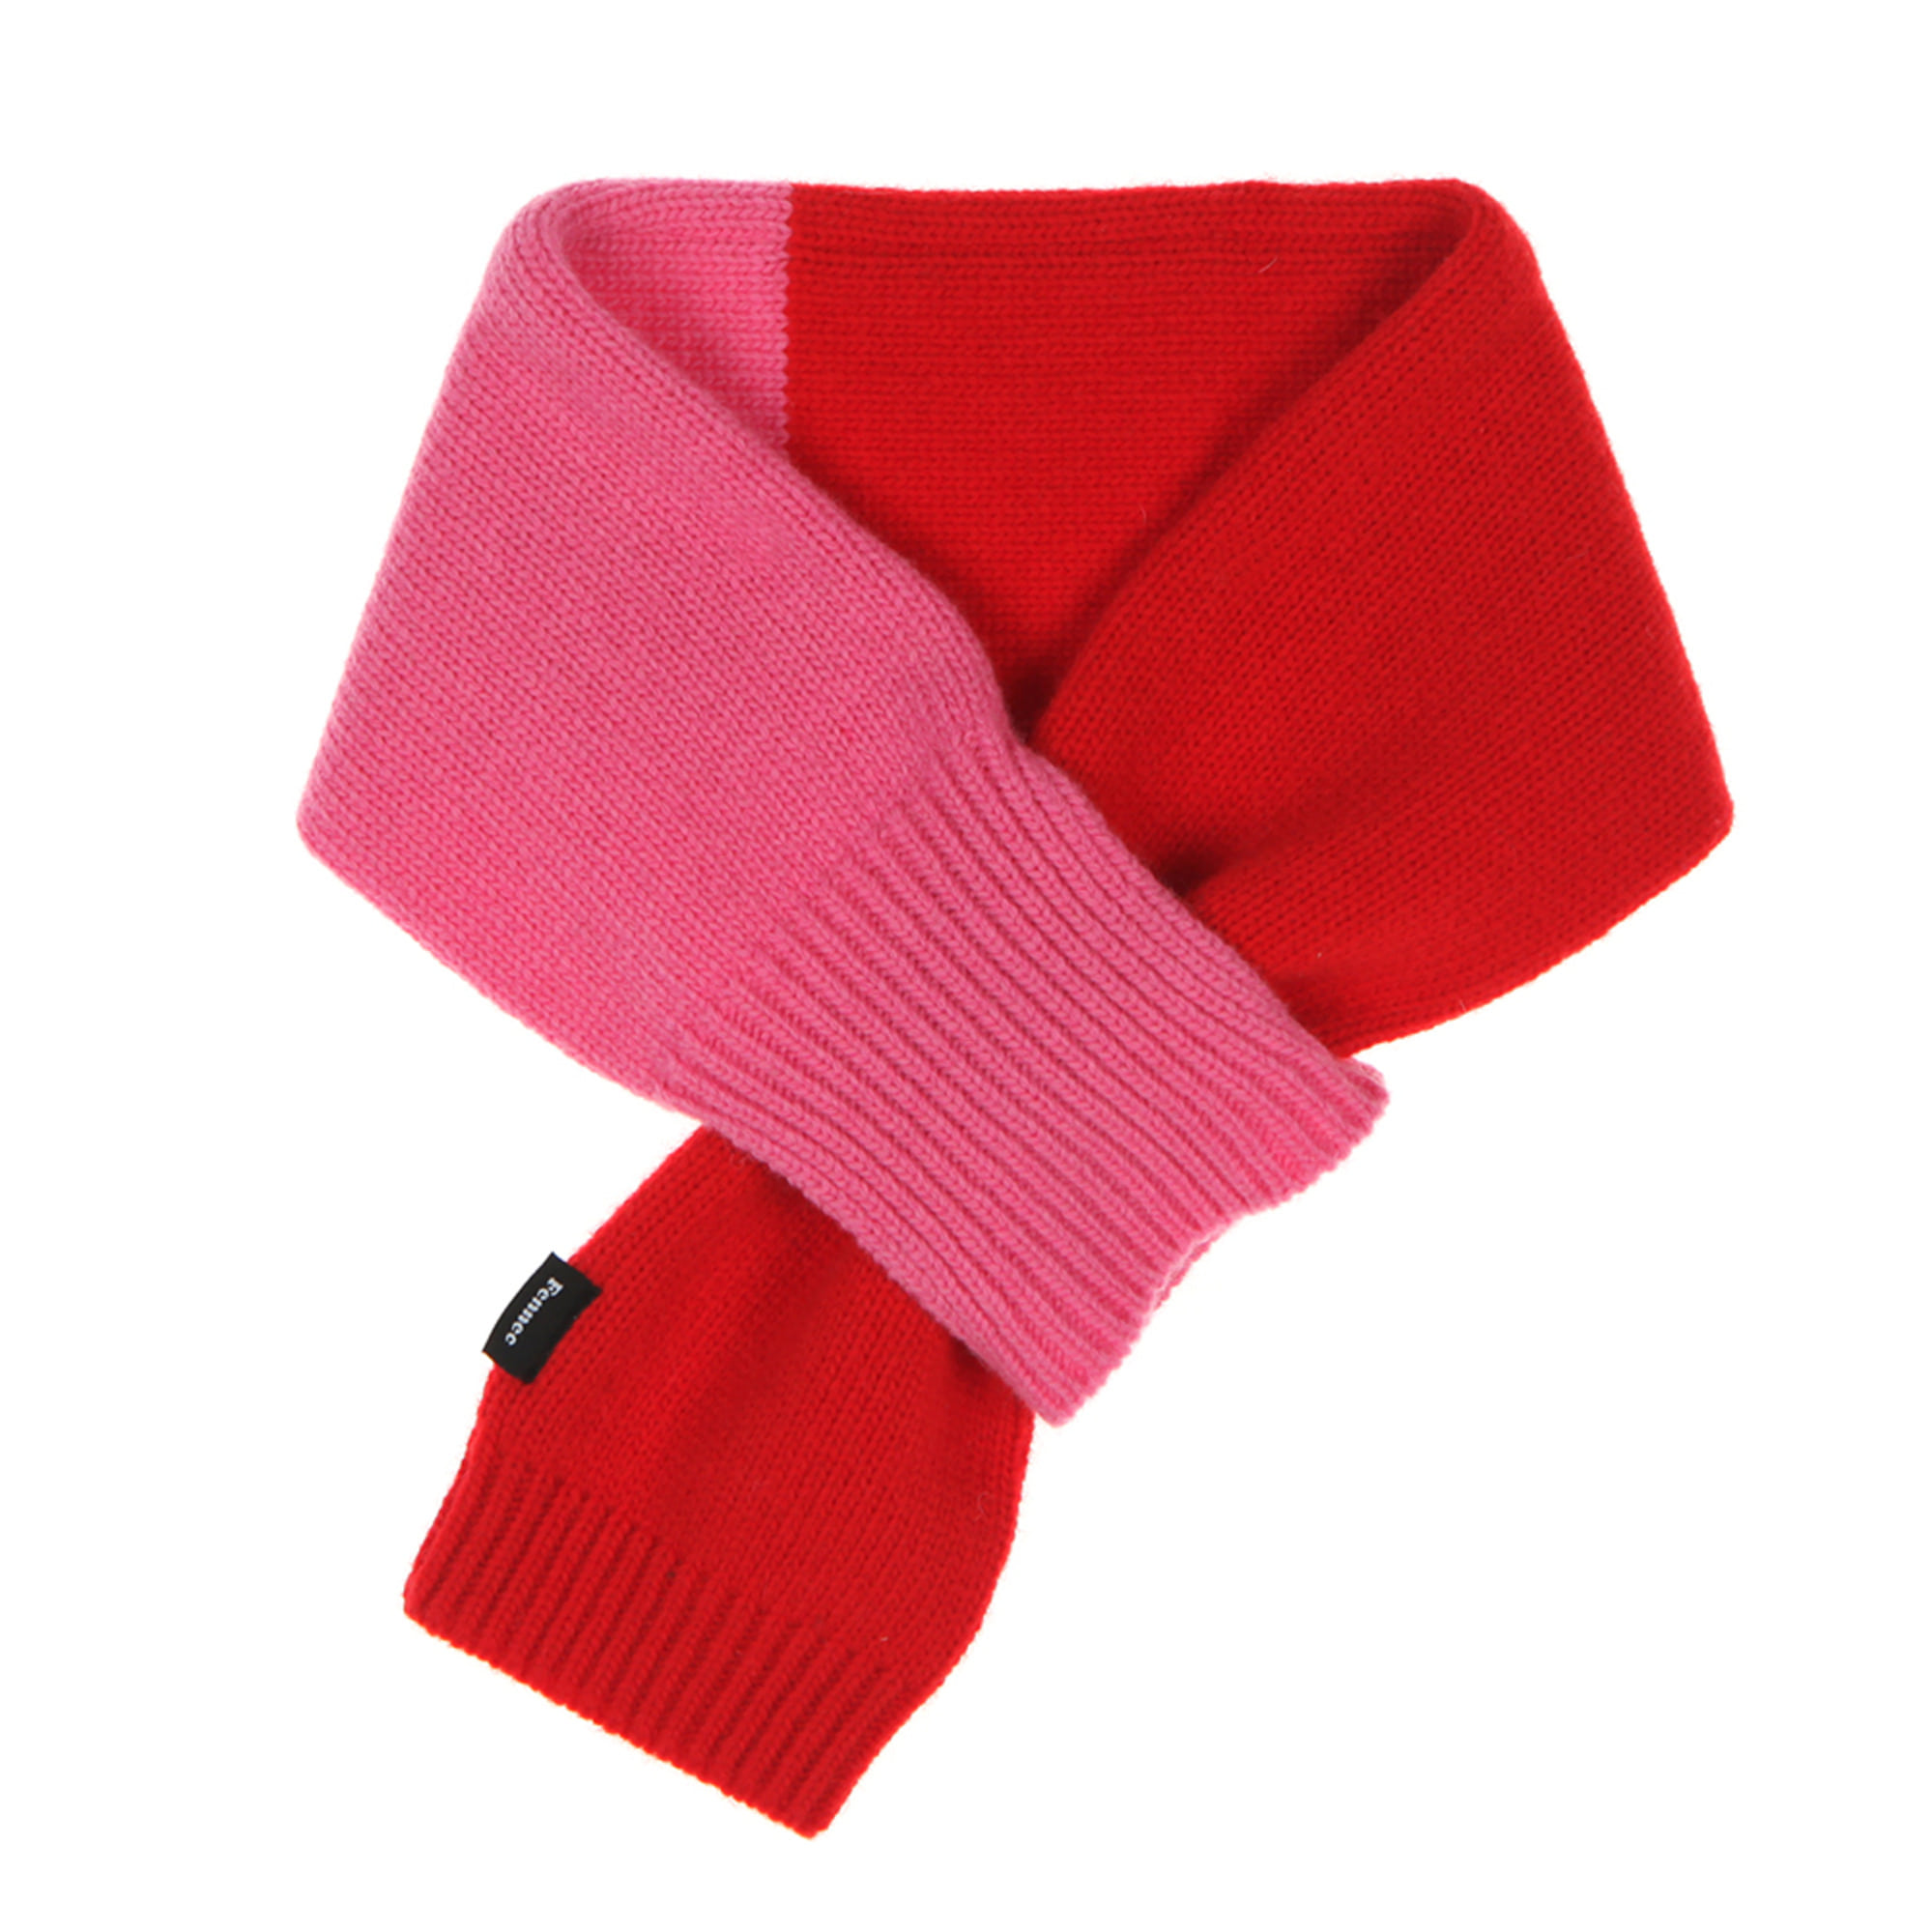 KNIT TIMI MUFFLER - RED